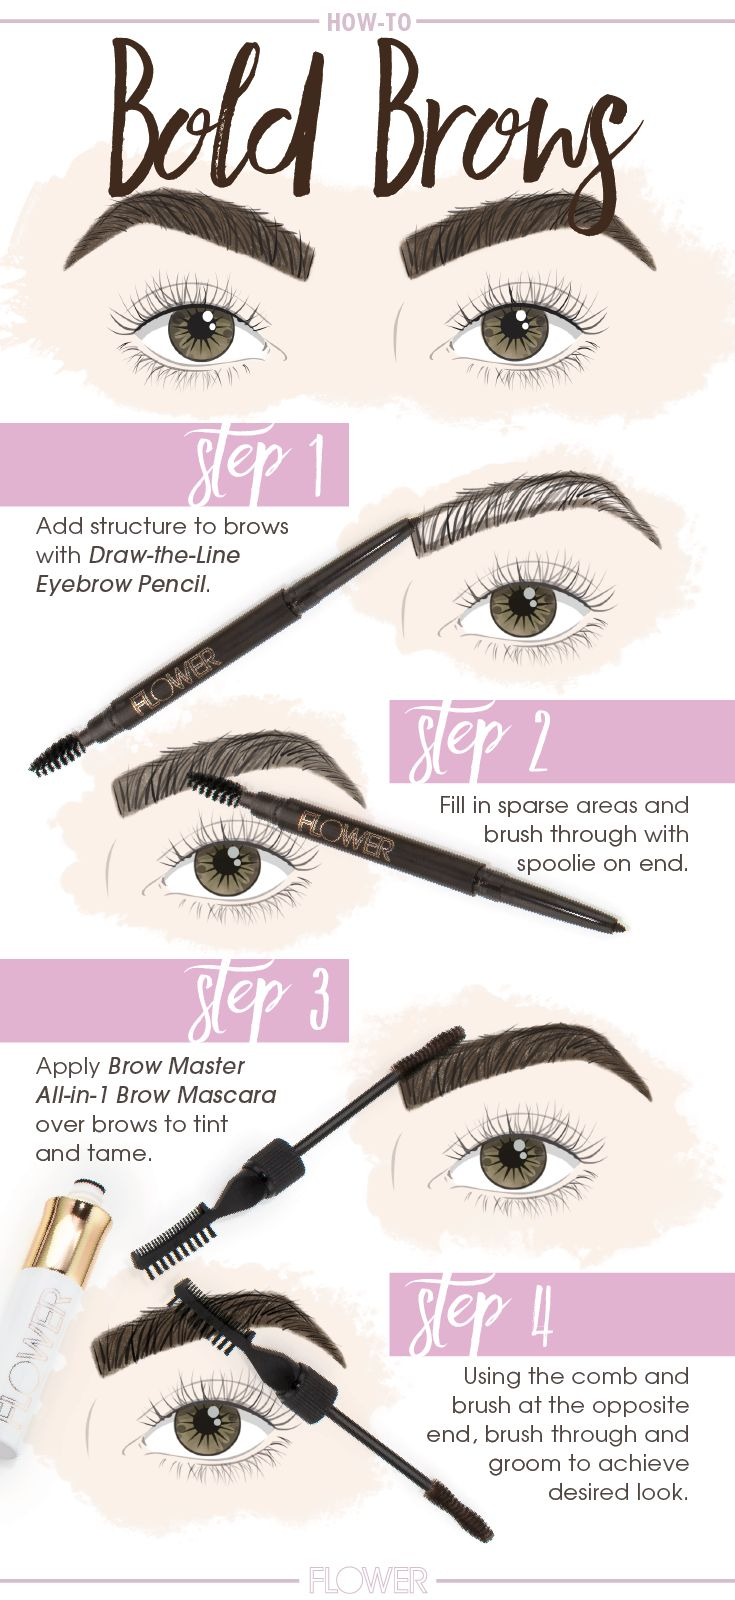 740cd65f1b7 Create bold dramatic eyebrows in four simple steps with #FLOWERBeauty Draw  the Line Eyebrow Pencil + Brow Master All-in-1 Brow Mascara.